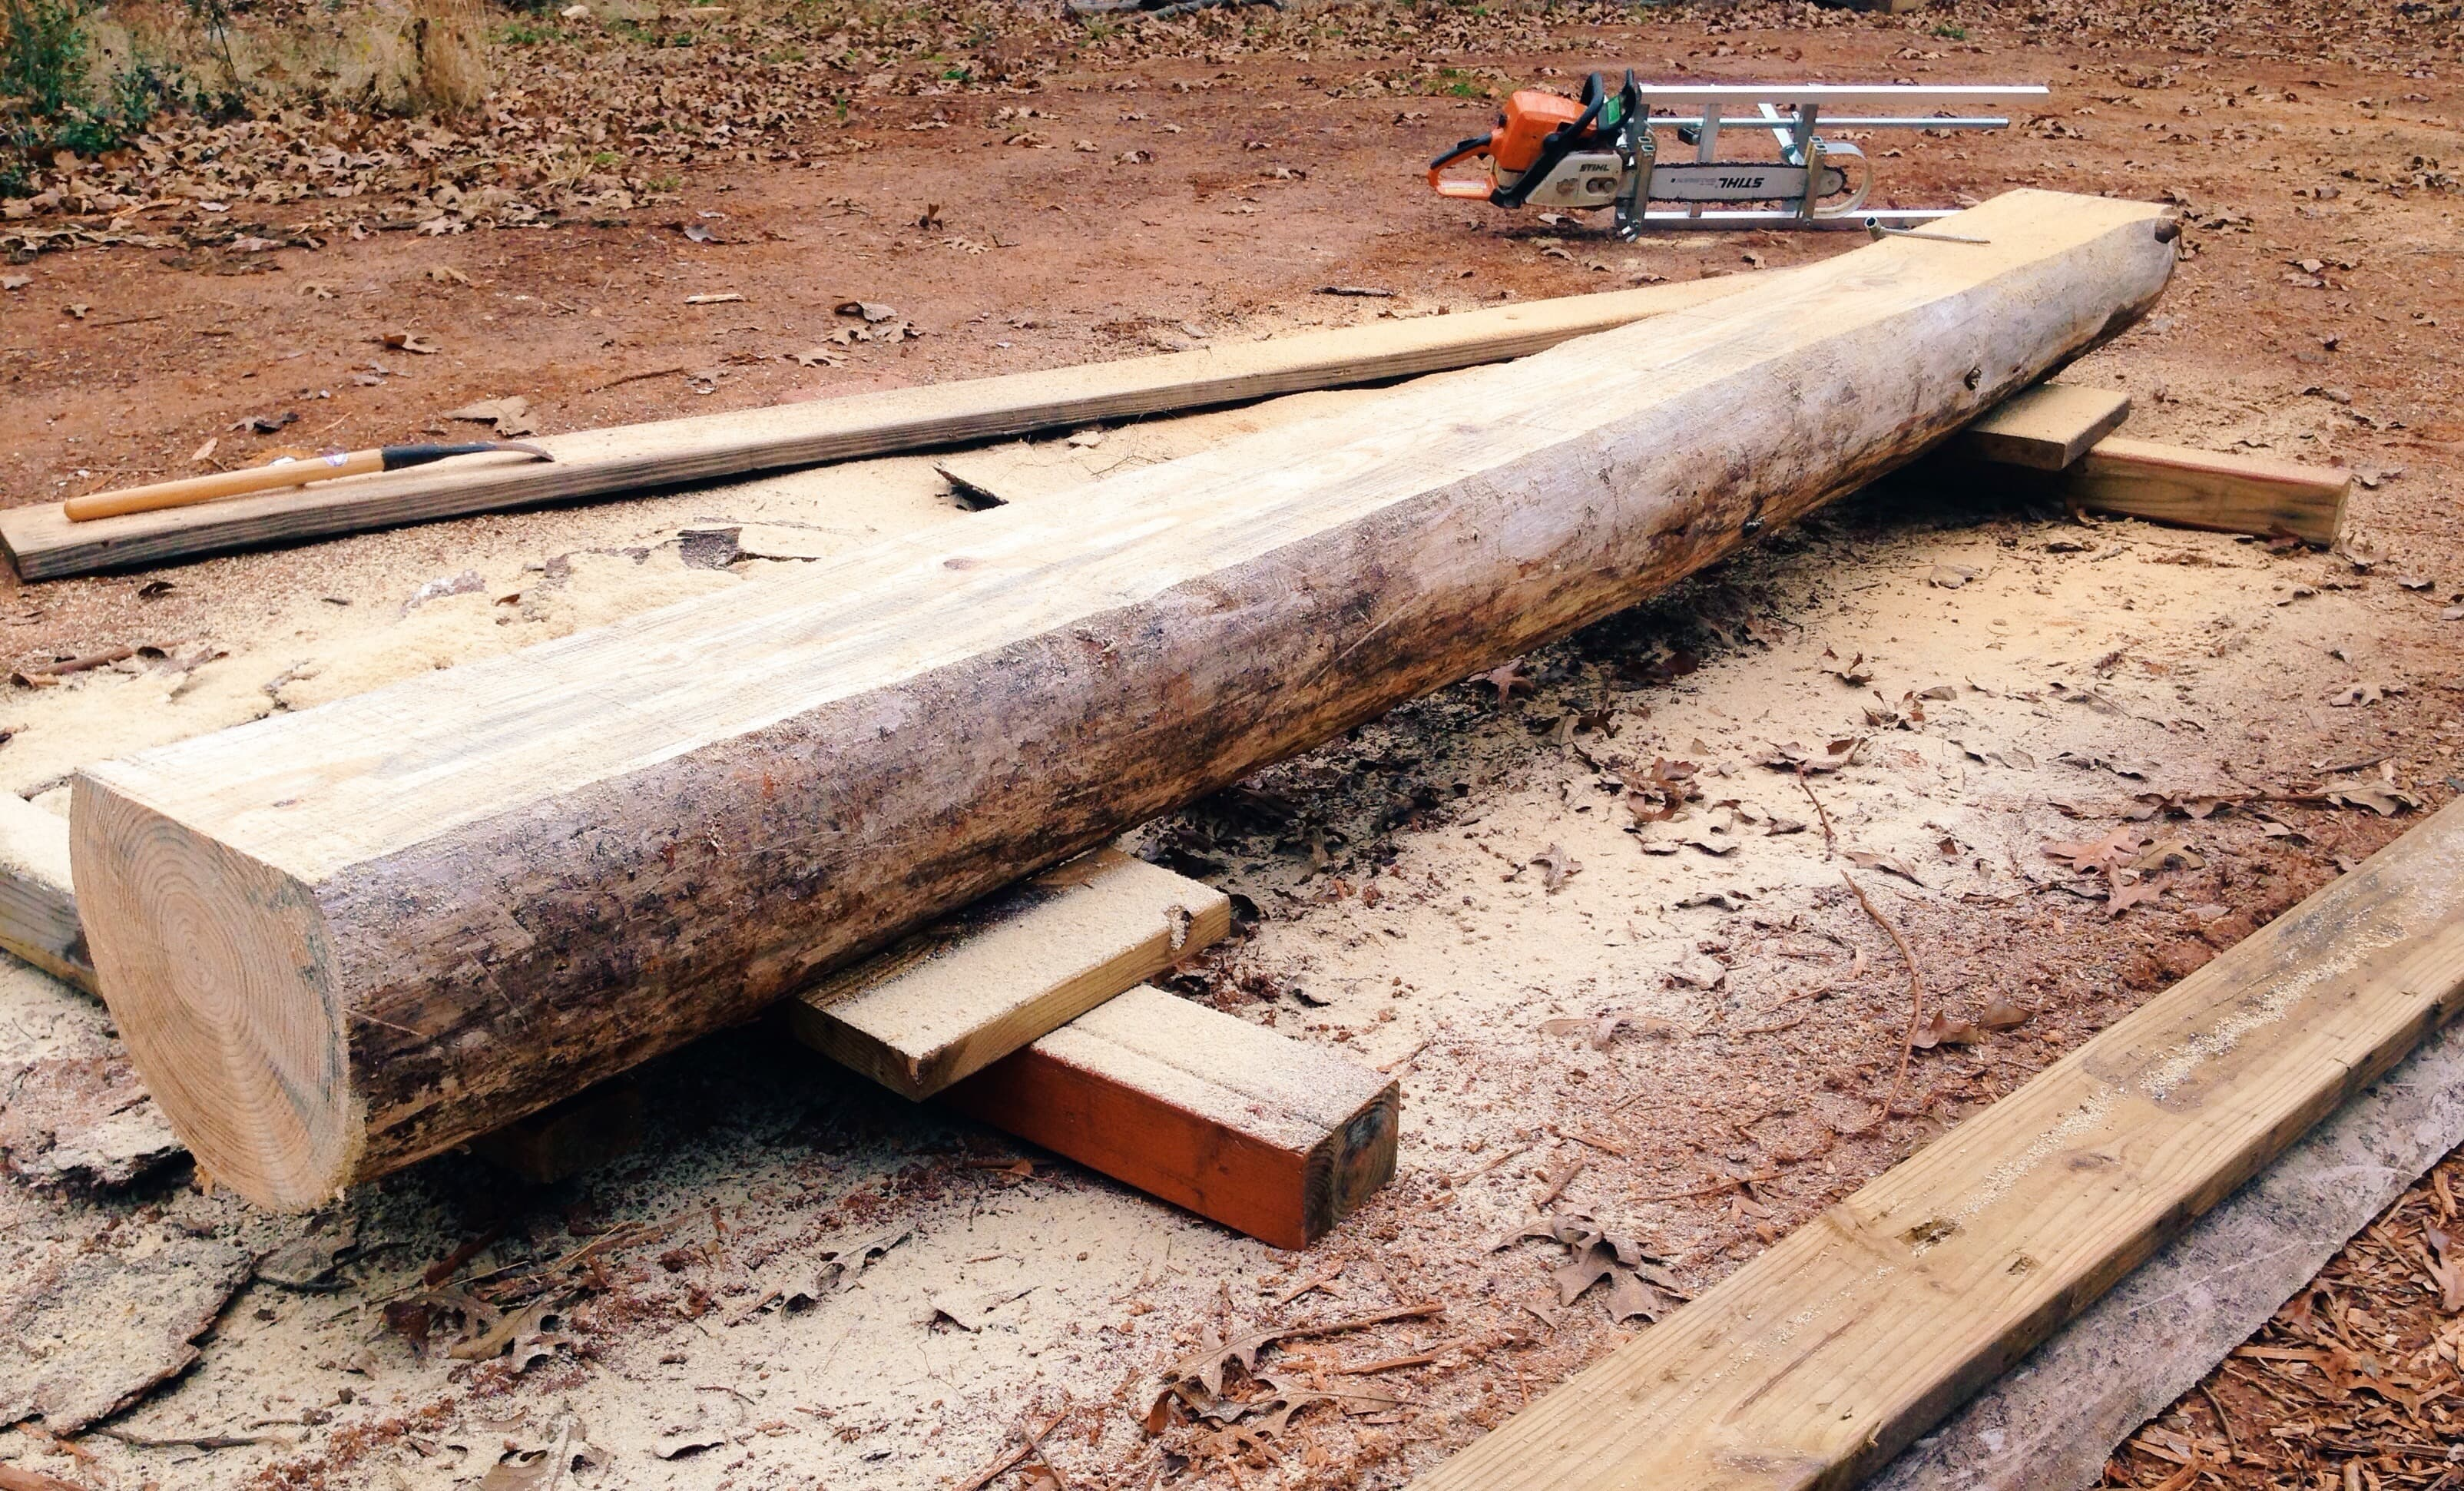 Granberg Alaskan Chainsaw Mill - East Texas Homestead